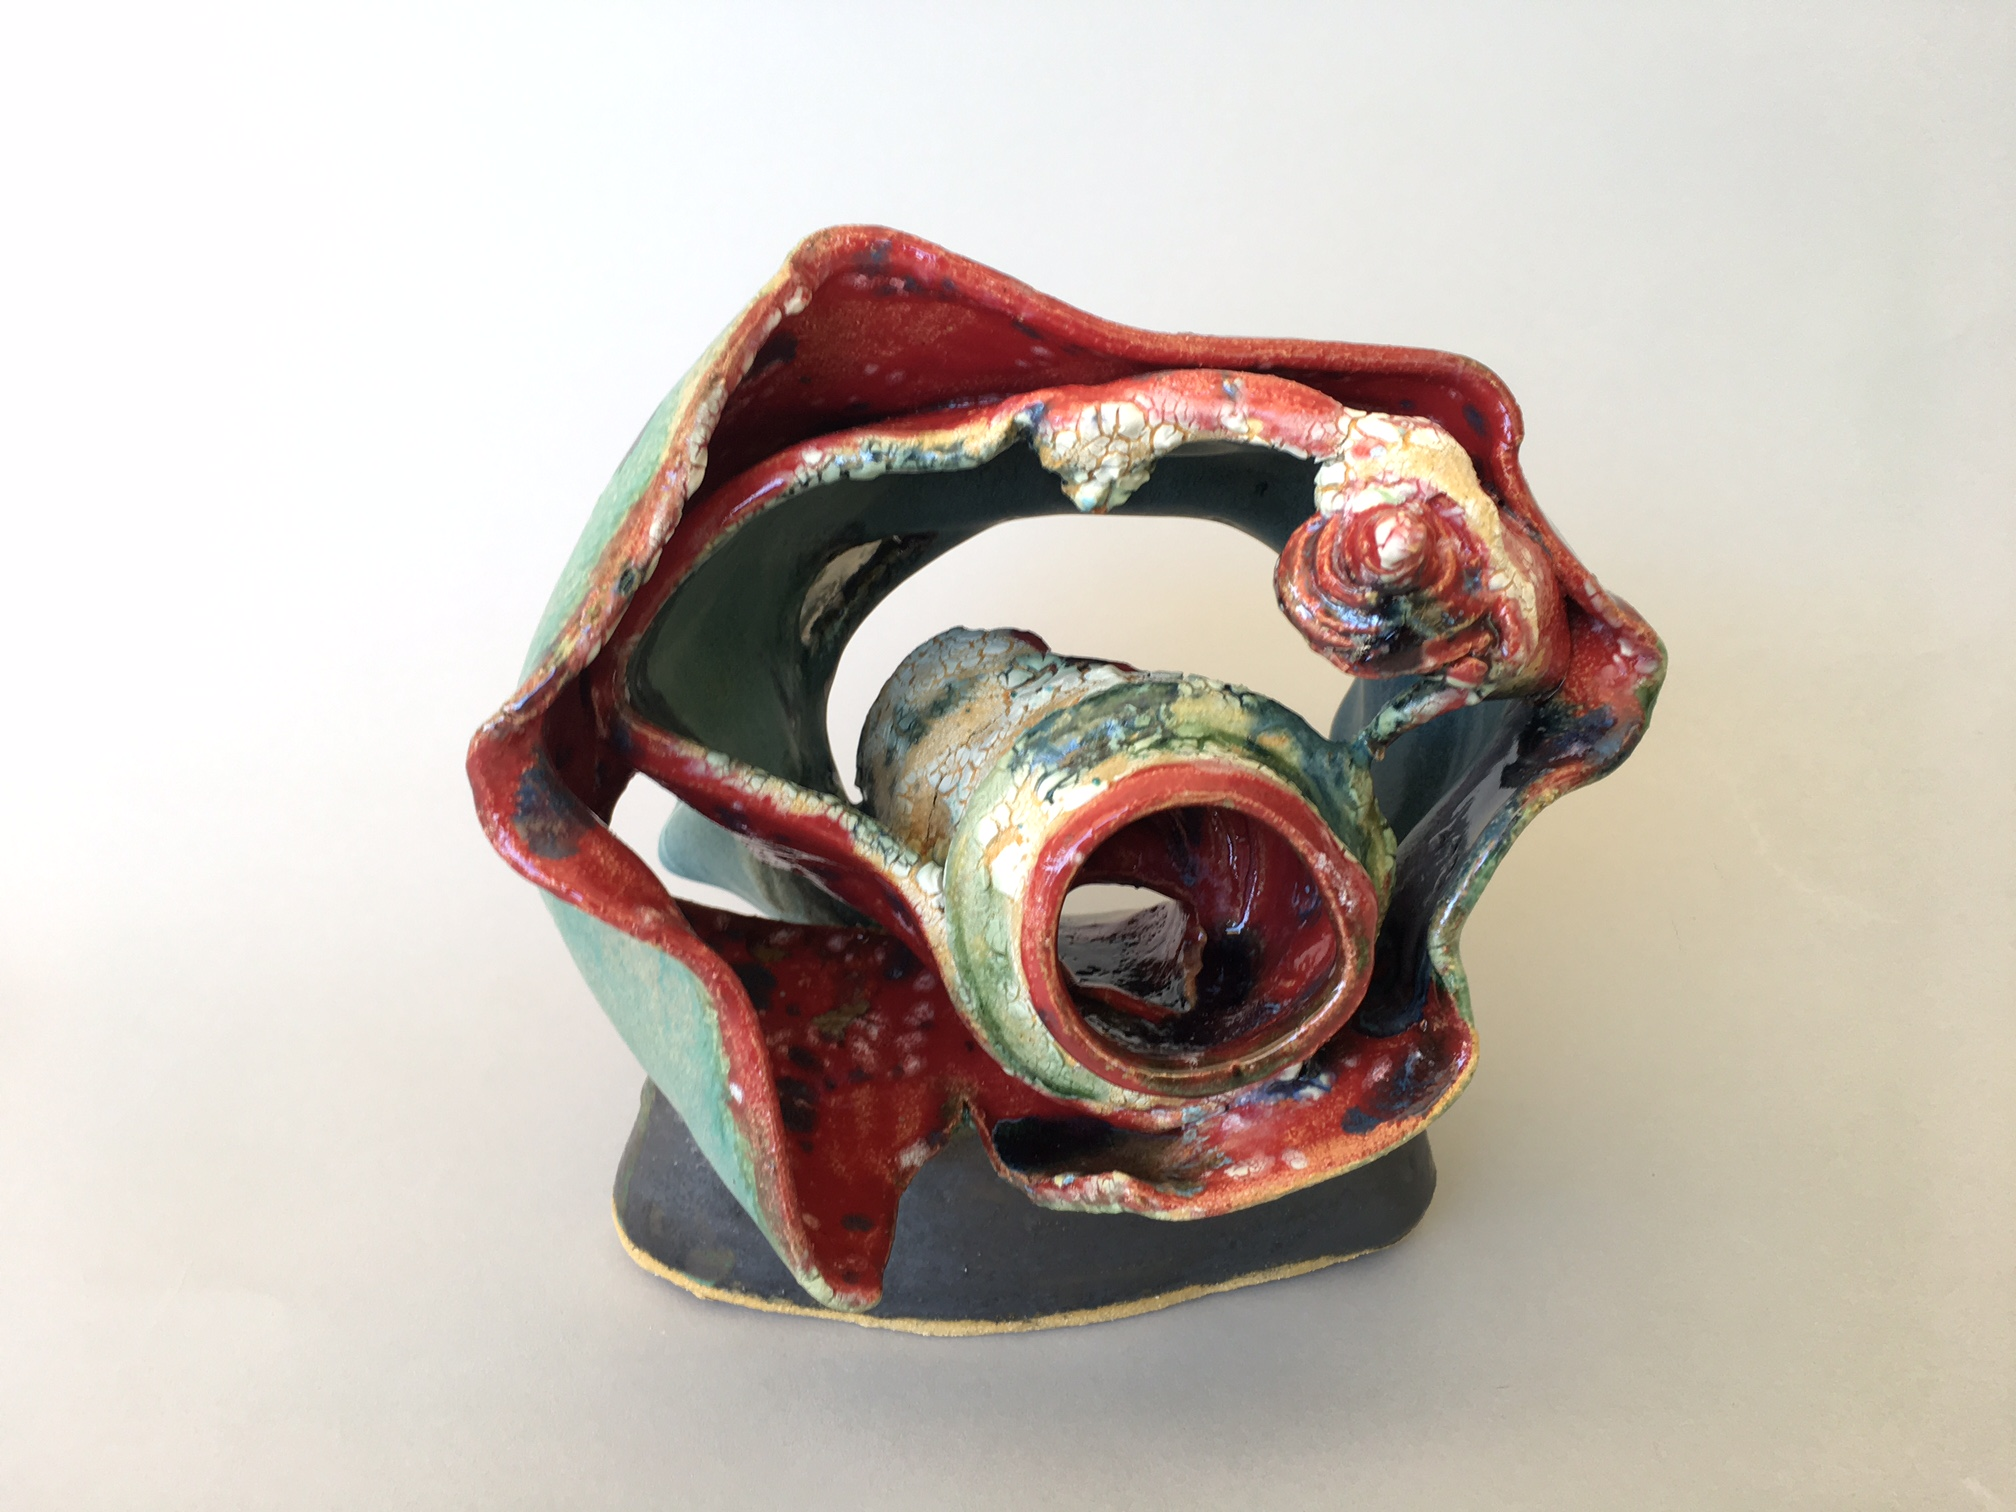 Abex #2 (Abstract Expressionism) - Glazed Ceramic$700Multiple forms put together to create abstract expressionism form